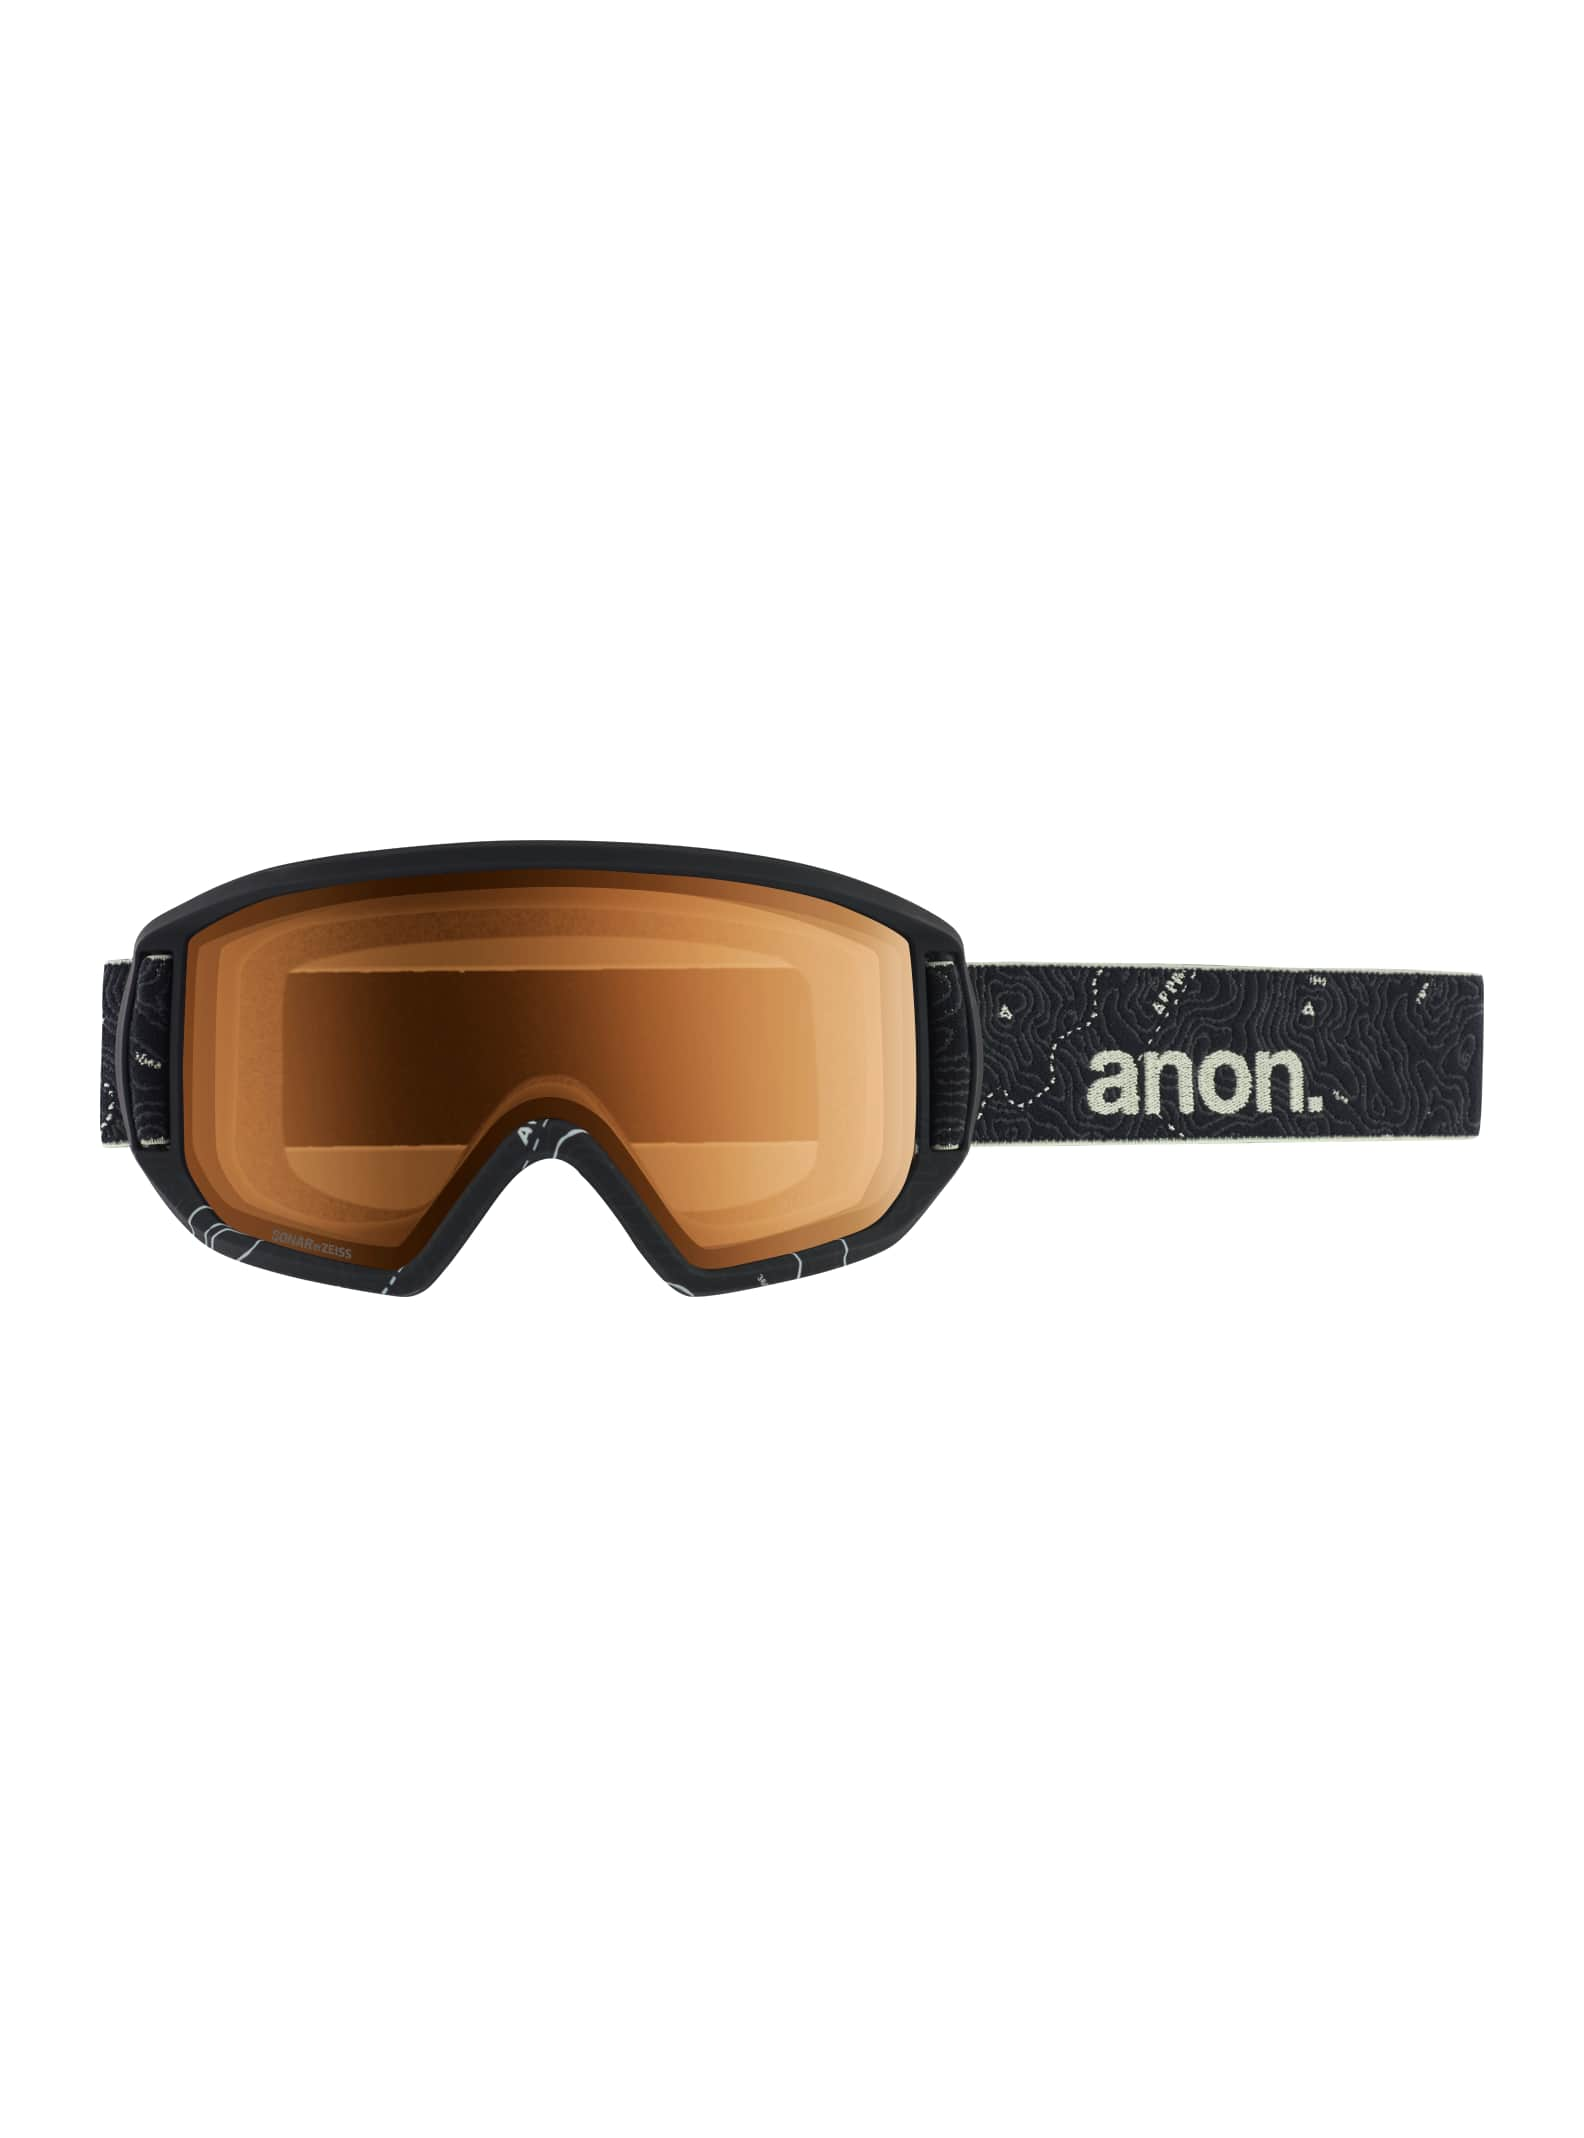 Anon Relapse Goggle Lens